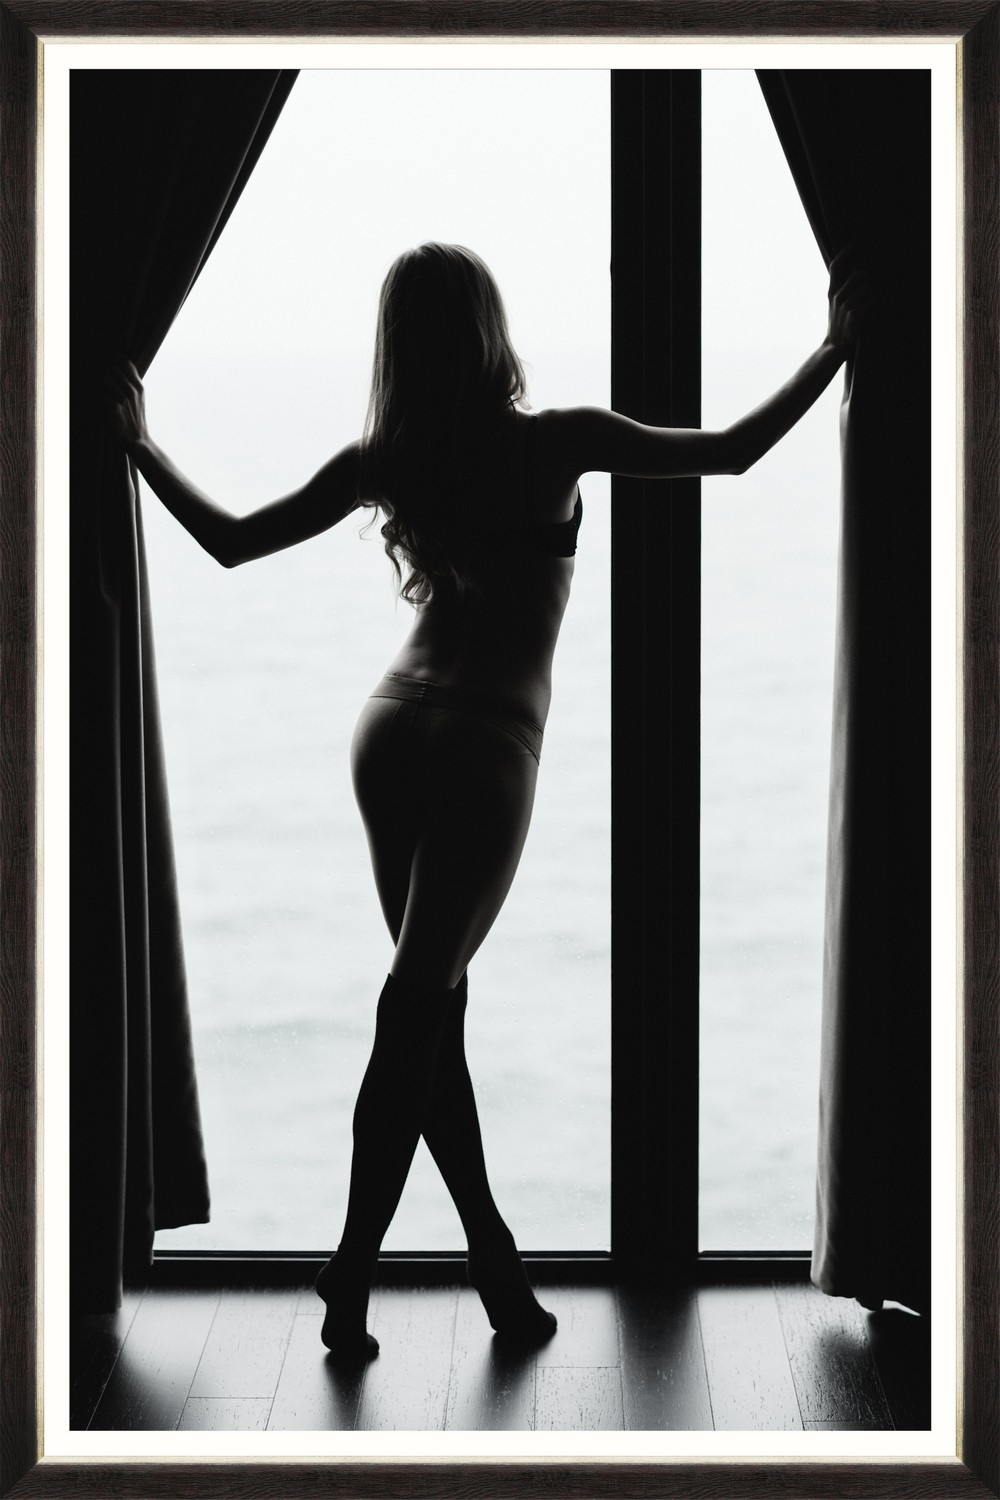 Tablou Framed Art New Day somproduct.ro